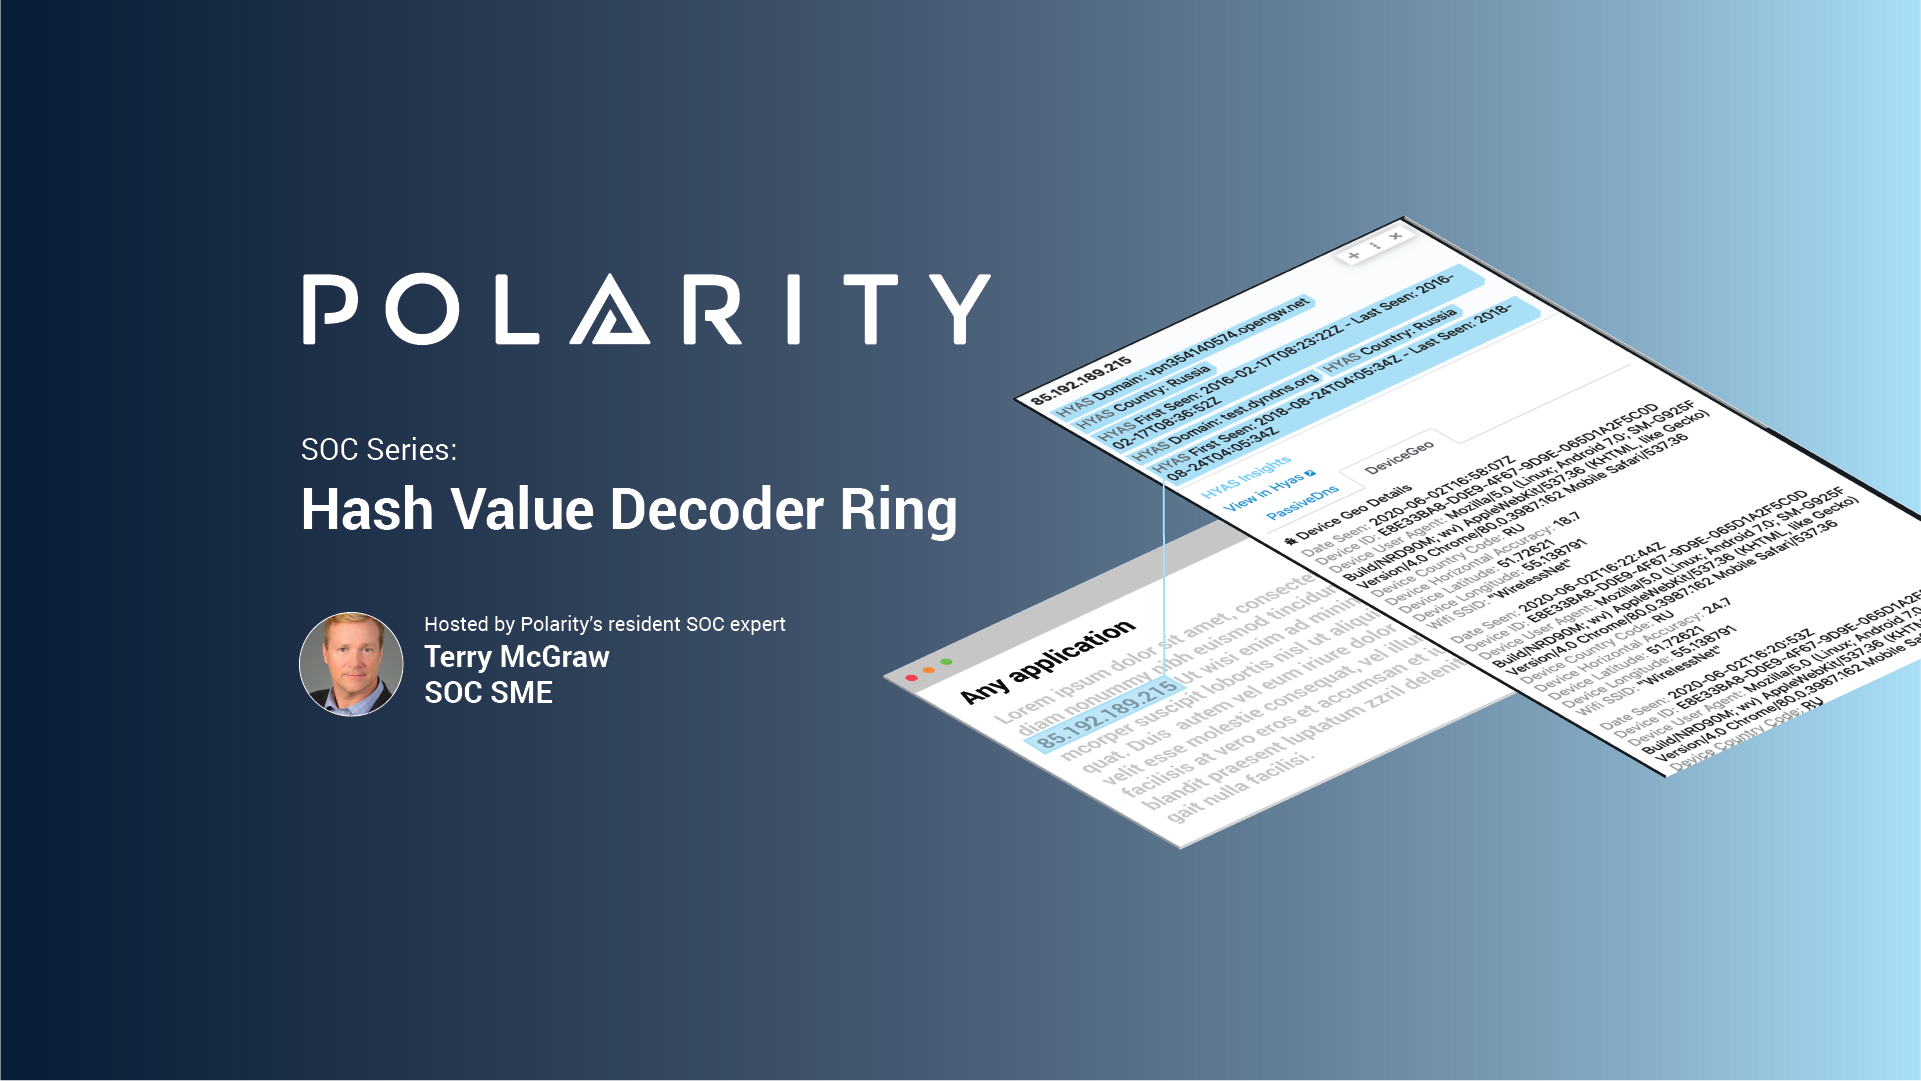 SOC Series: Hash Value Decoder Ring cover image